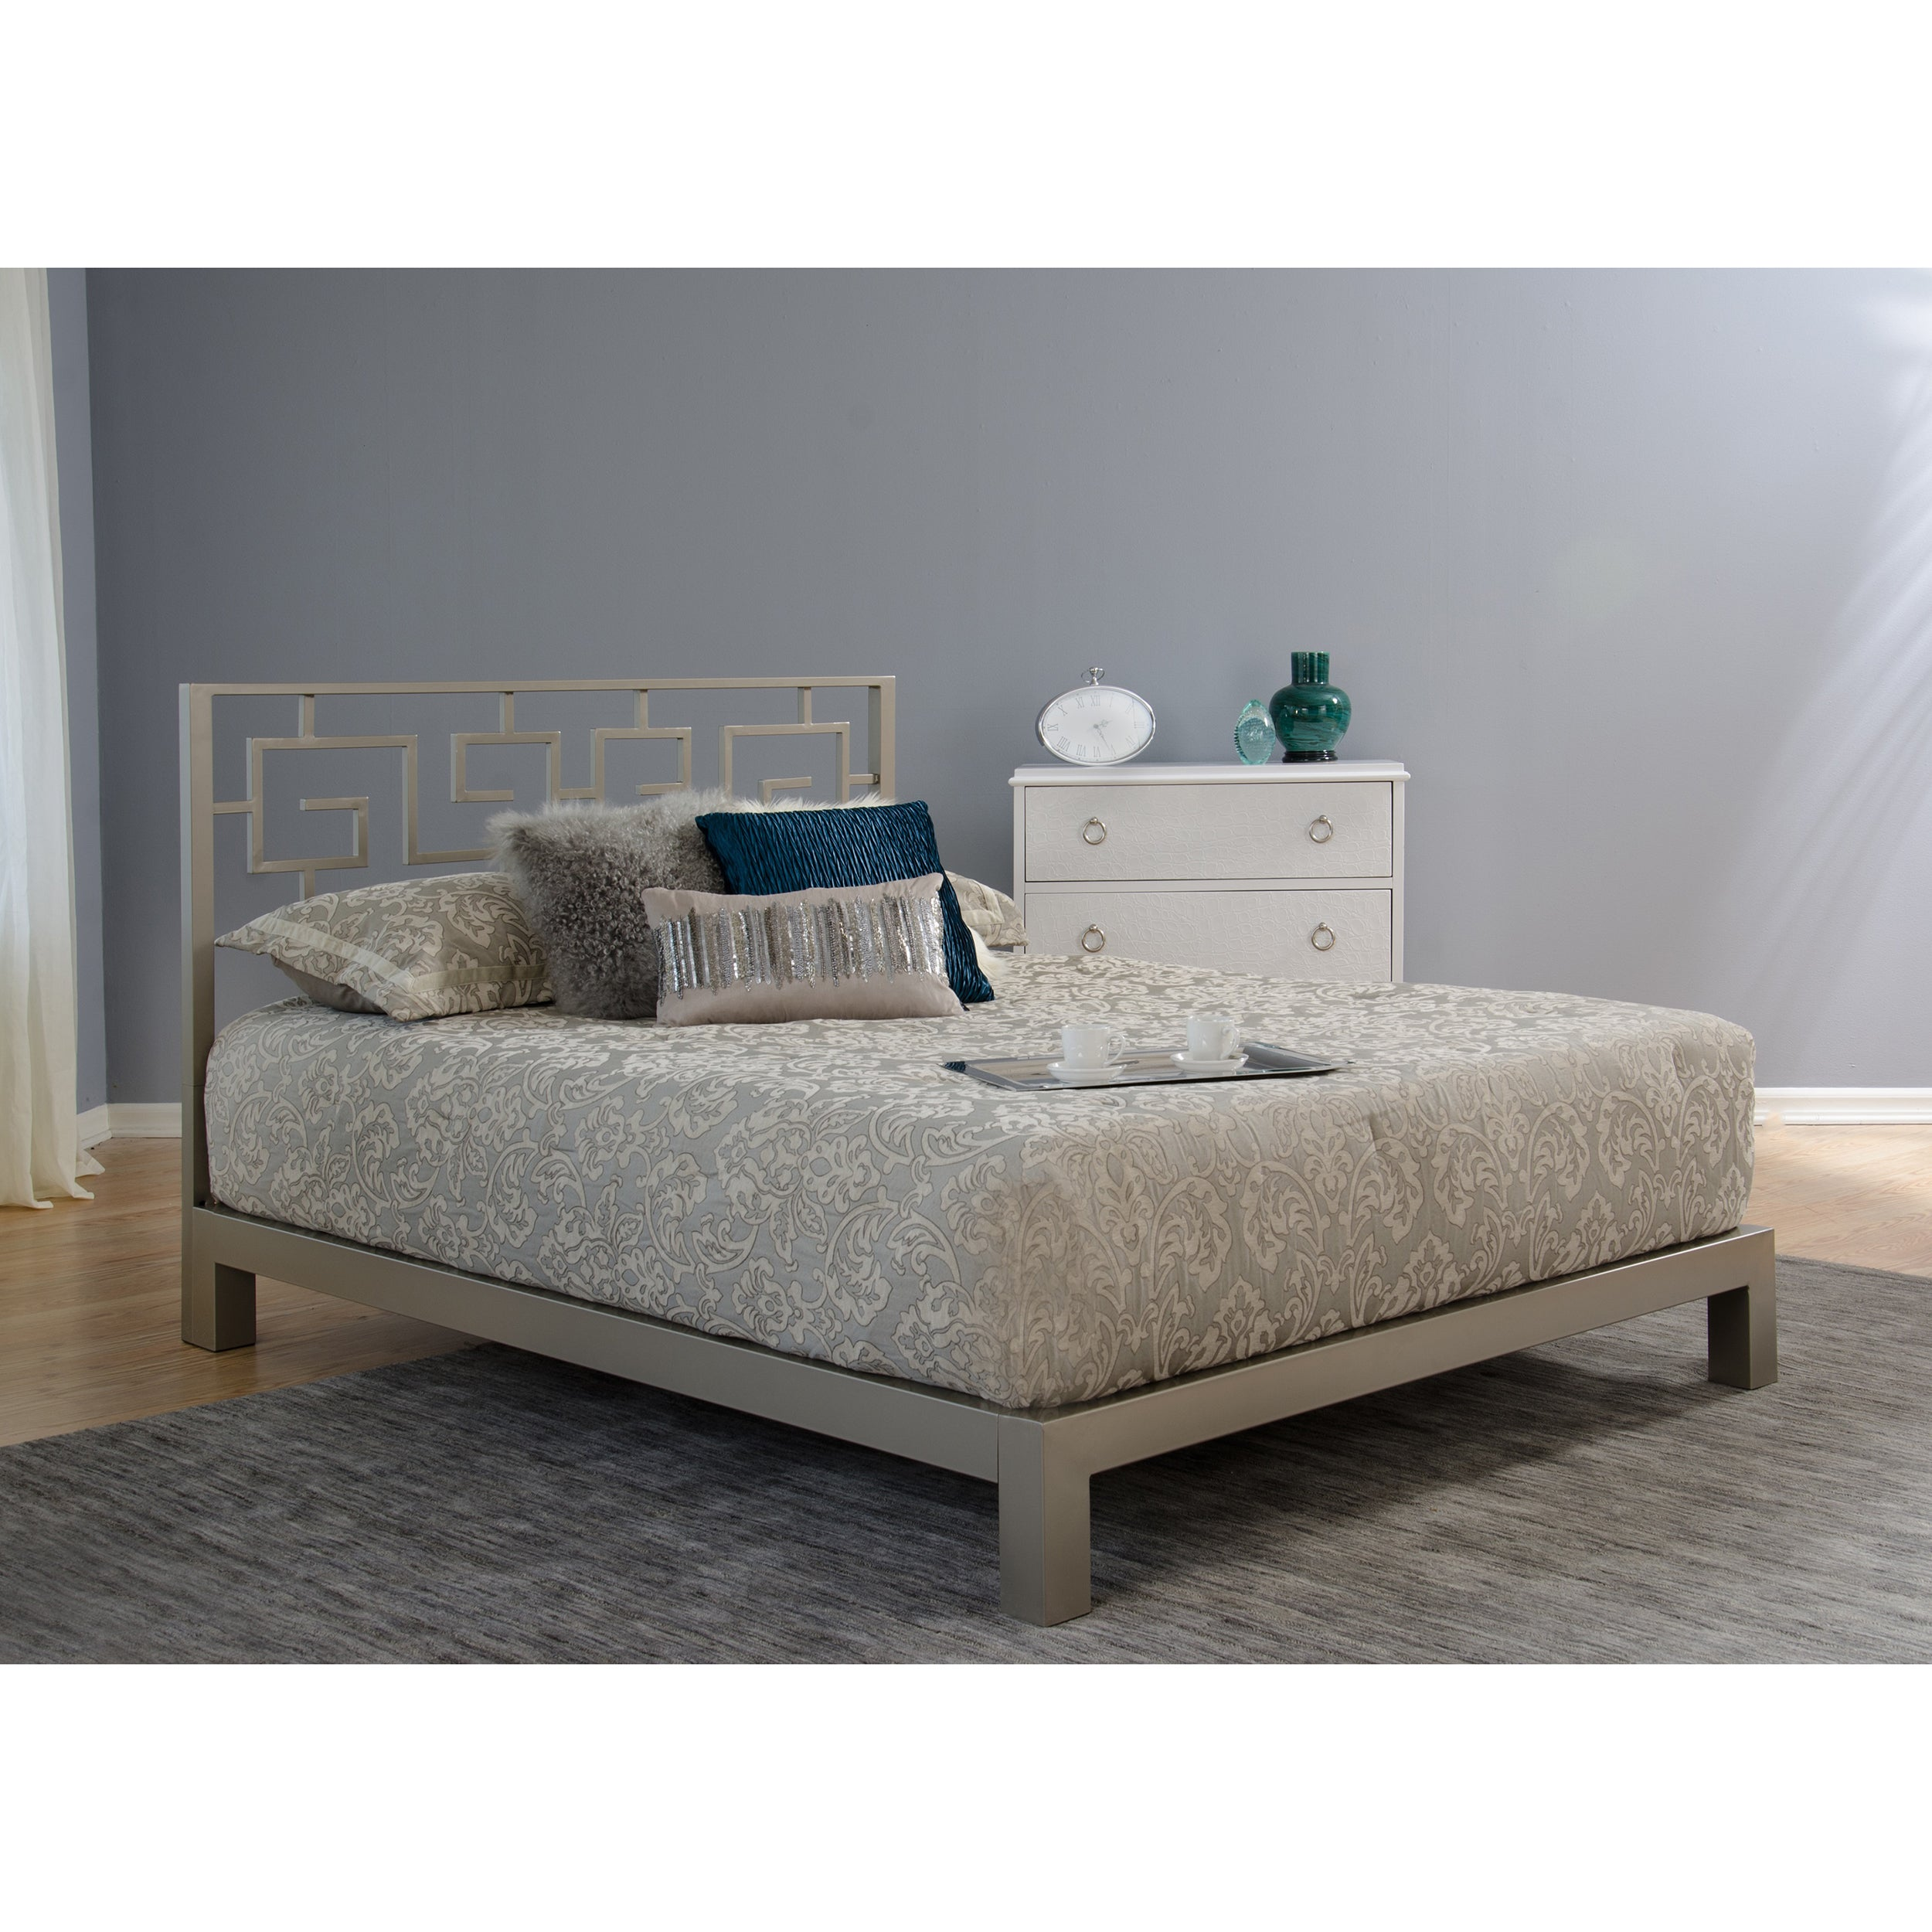 Motif design greek key metal headboard and aura gray platform bed